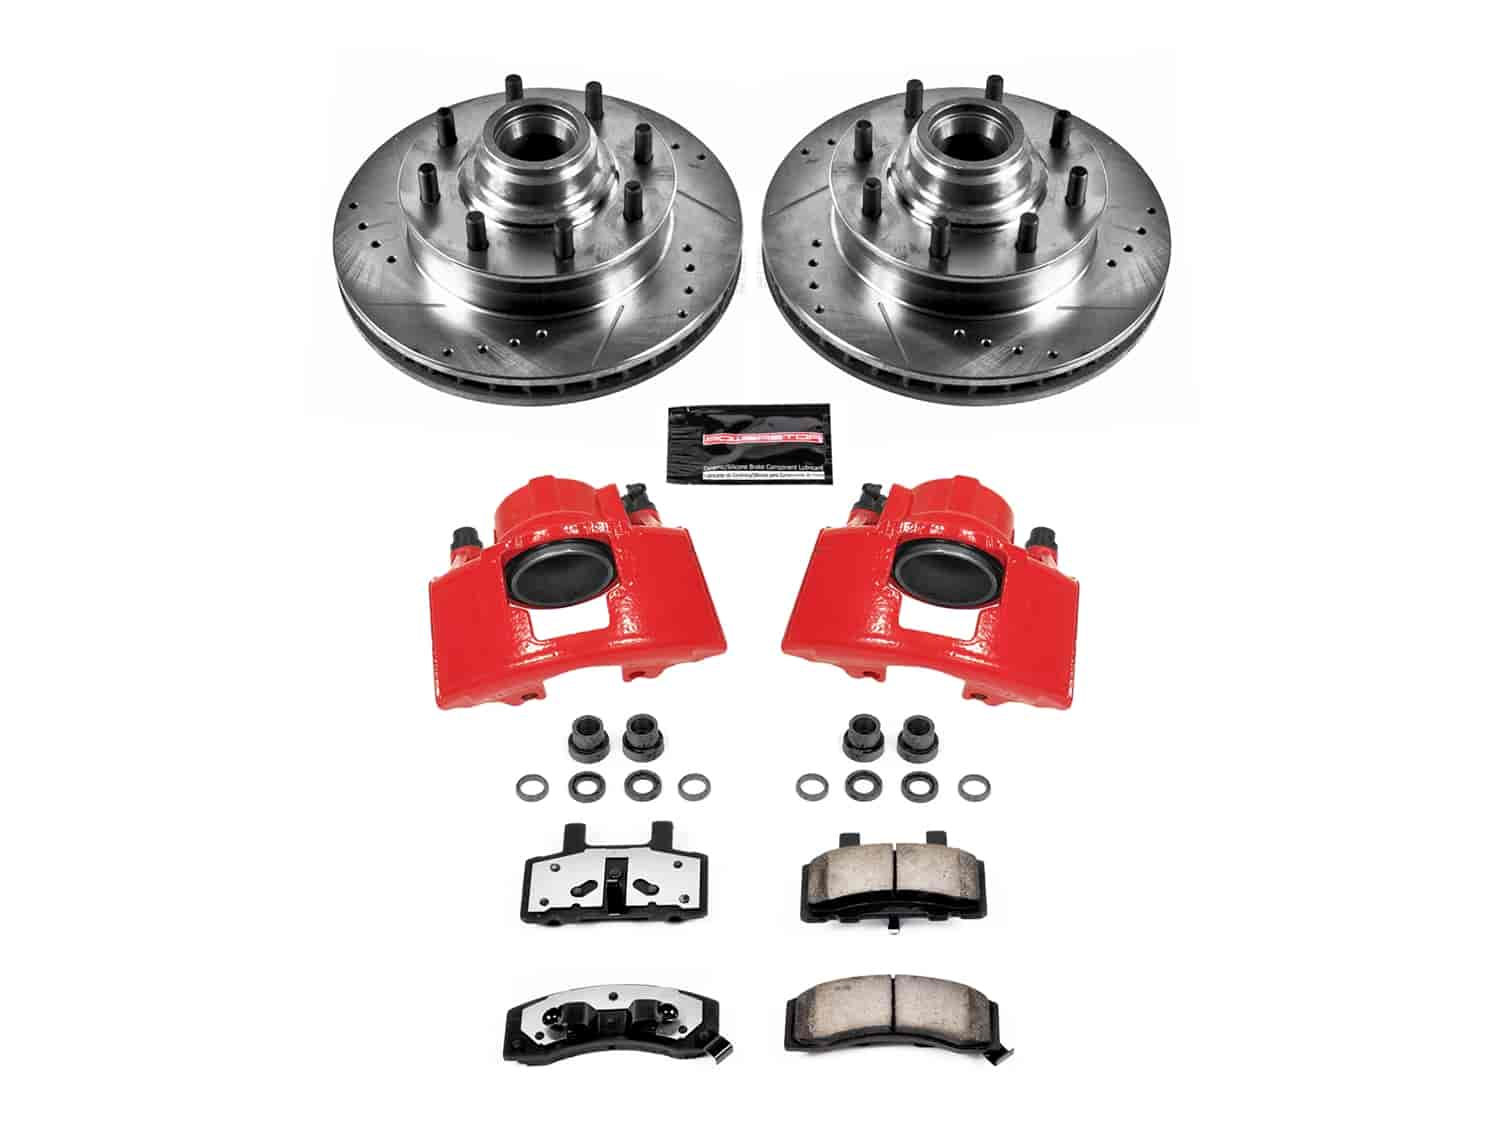 1992 1993 1994 1995 For GMC K2500 Suburban Front Brake Rotors and Pads 8 Lug